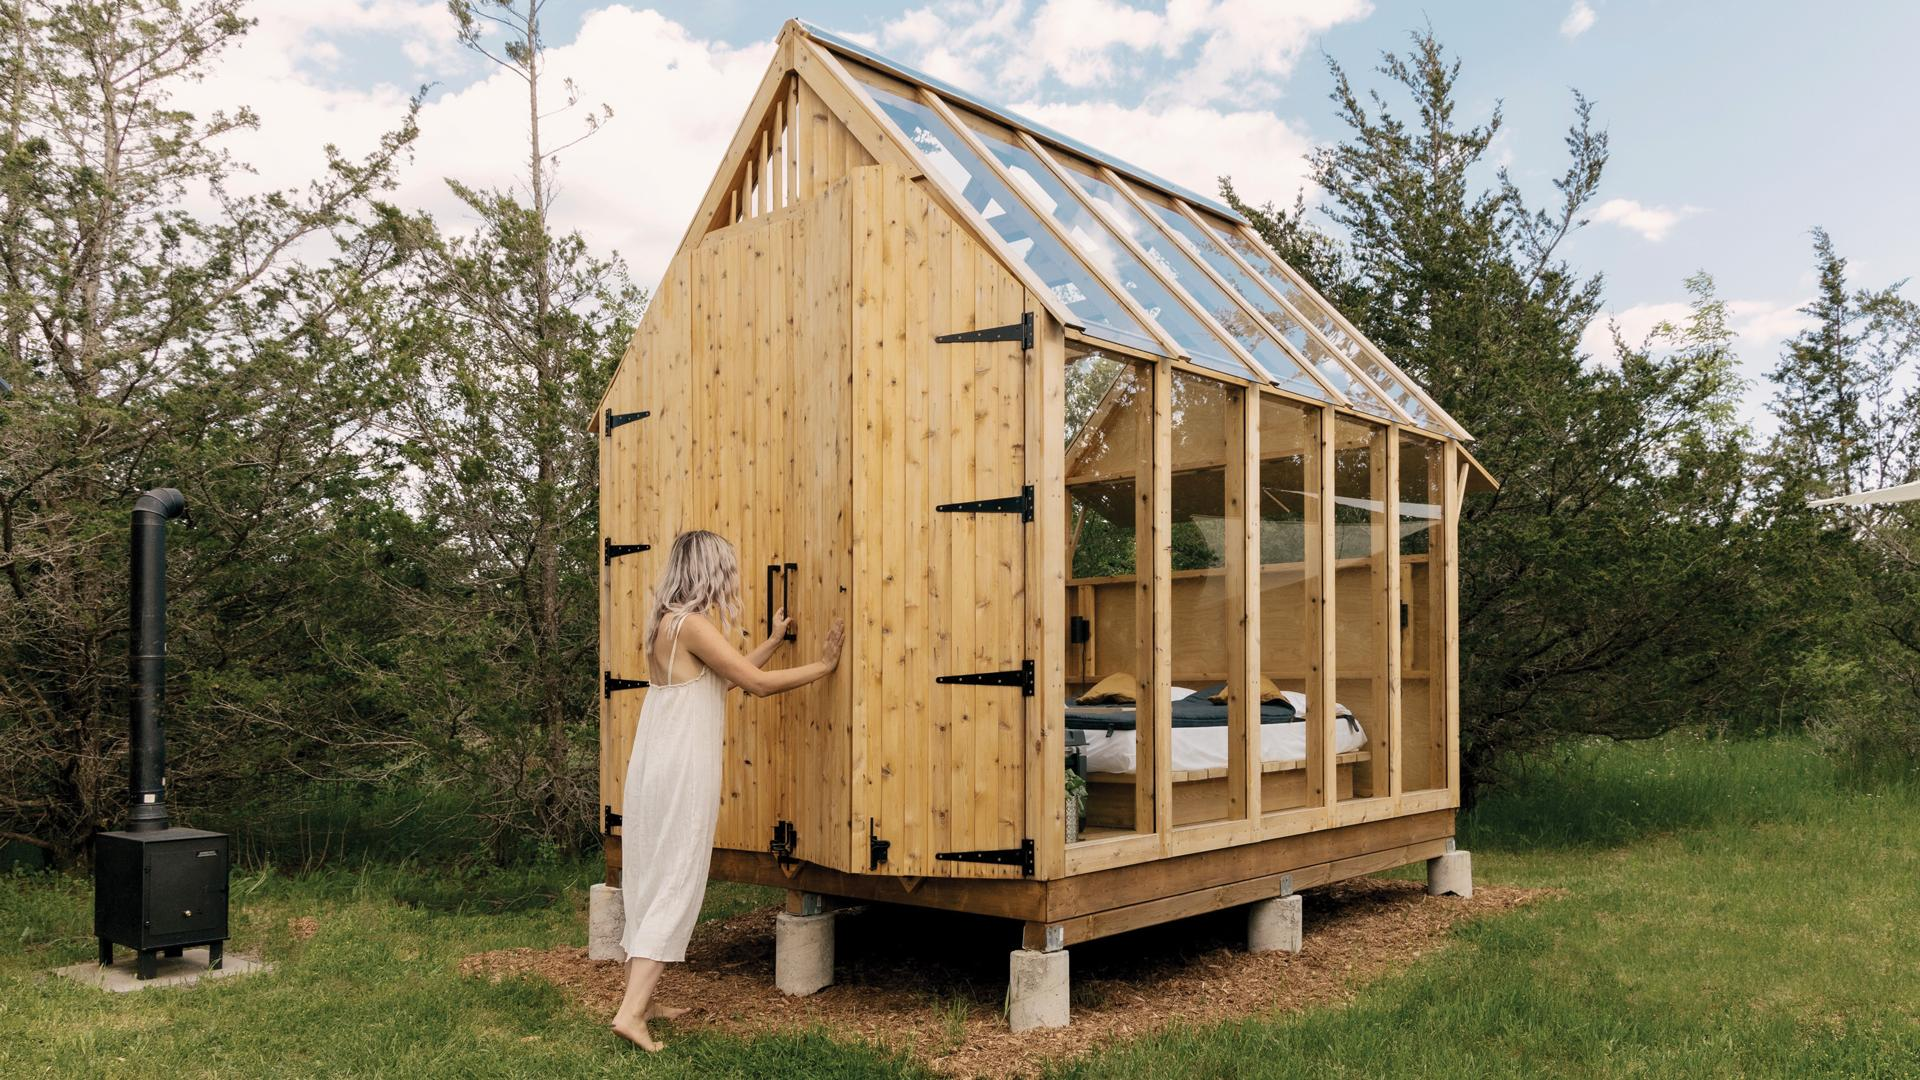 Ontario's coolest cabins to rent | Outside the Edward's Skyward cabin in Prince Edward County